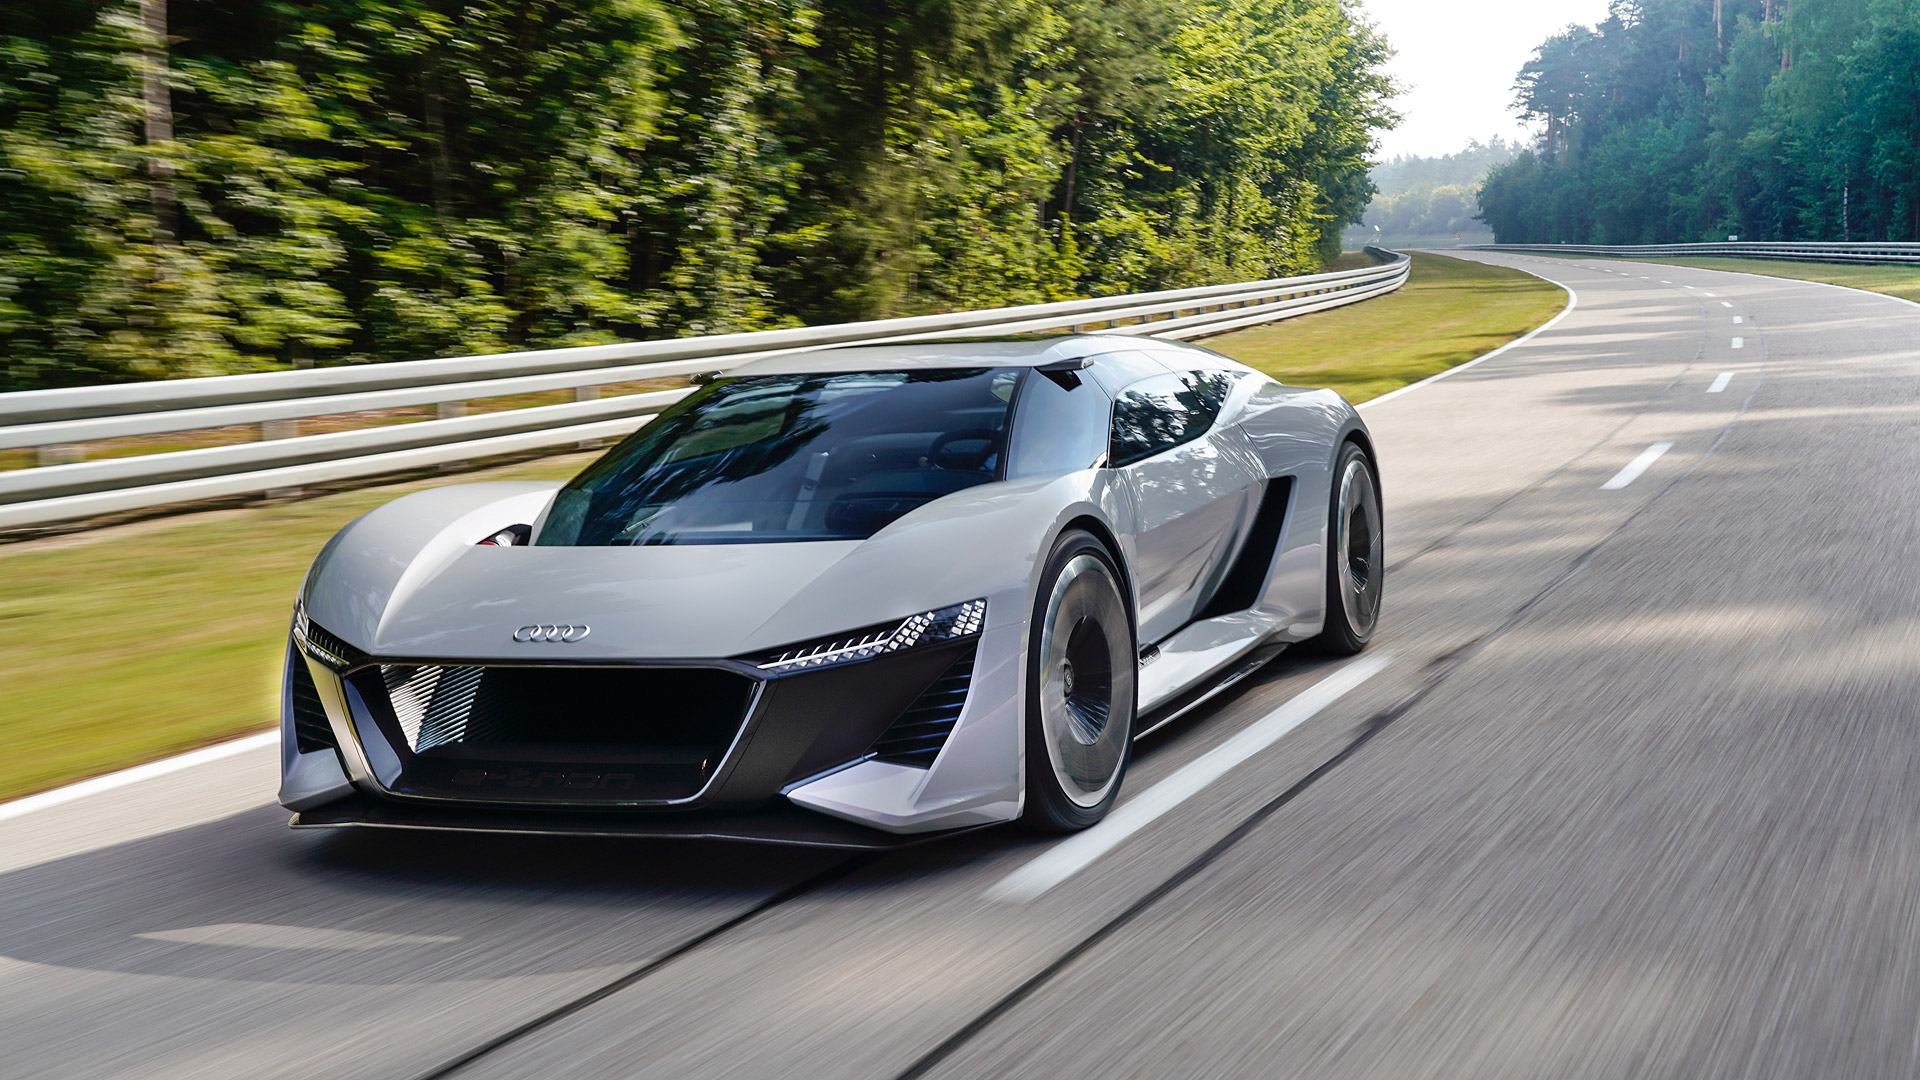 Free Download 2018 Audi Pb18 E Tron Concept Wallpapers Hd Images Wsupercars 1920x1080 For Your Desktop Mobile Tablet Explore 33 Audi E Tron Wallpapers Audi E Tron Wallpapers Audi R8 E Tron